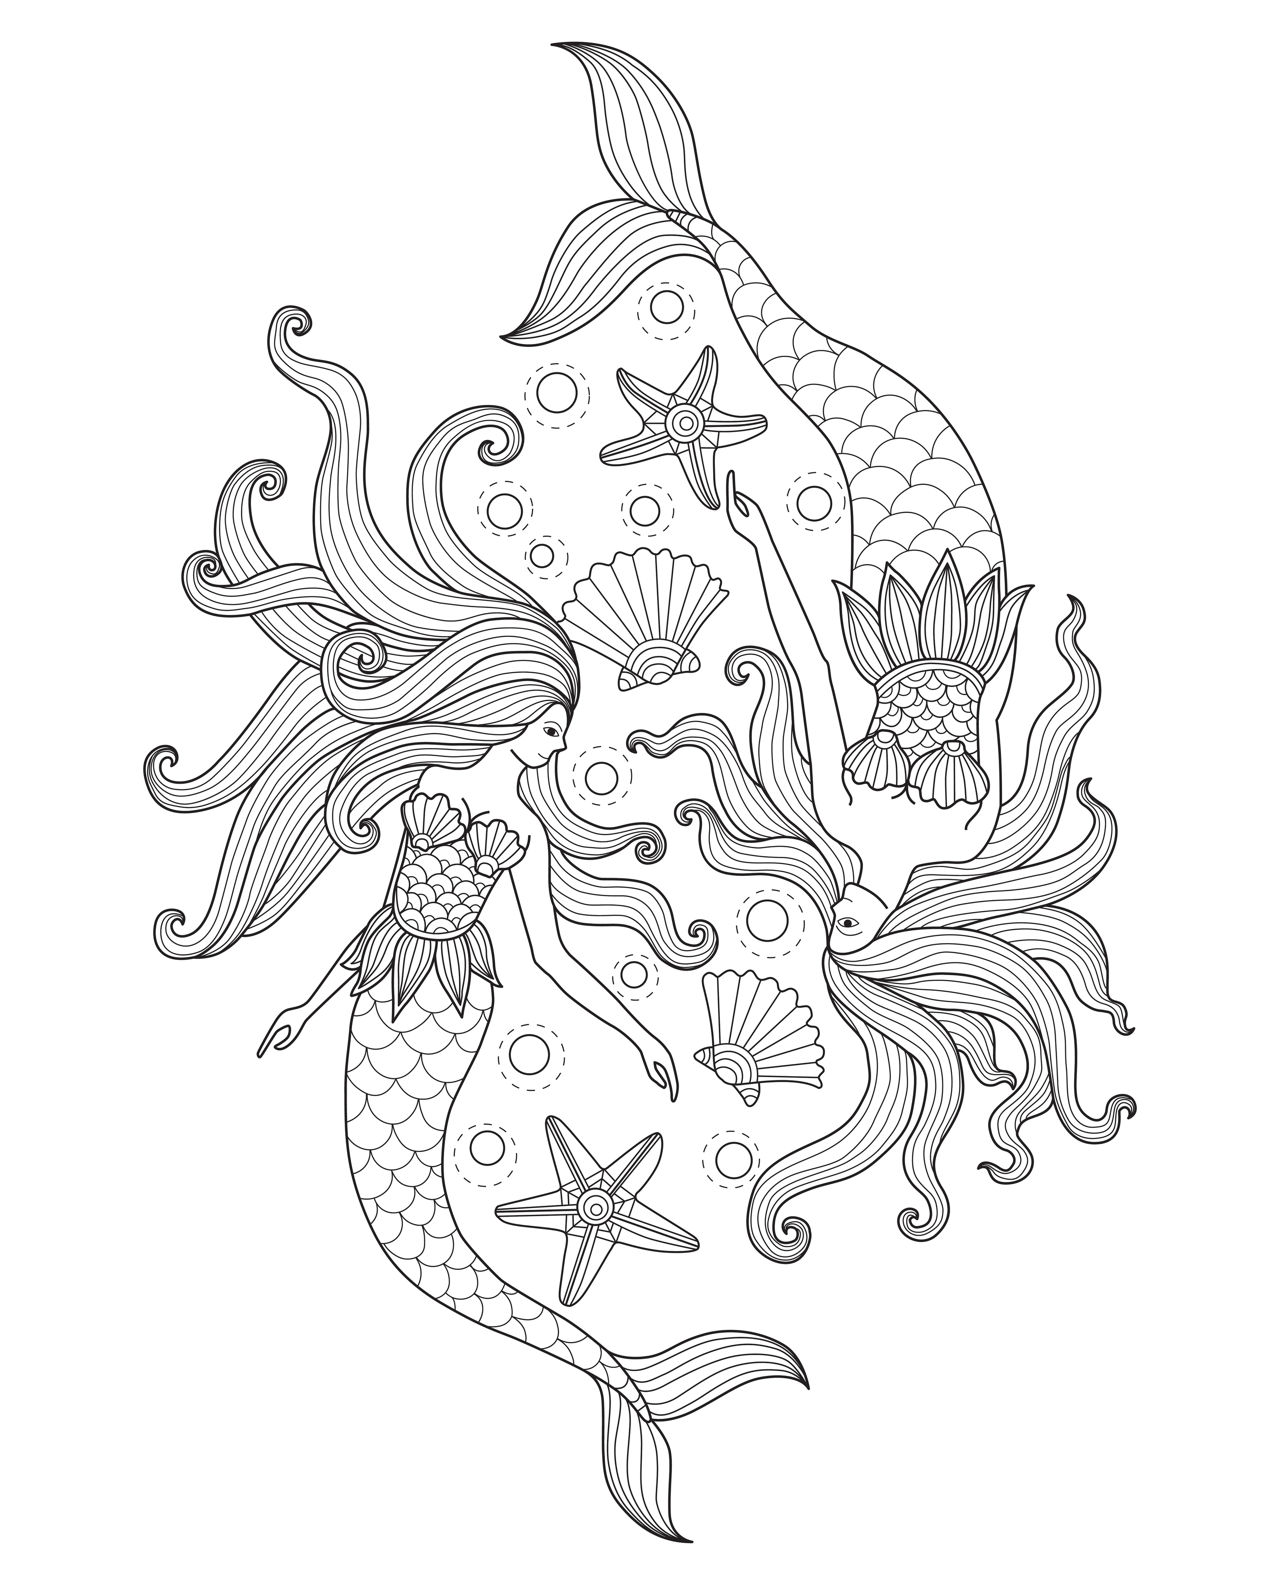 coloring pages mermaids print download find the suitable little mermaid pages mermaids coloring